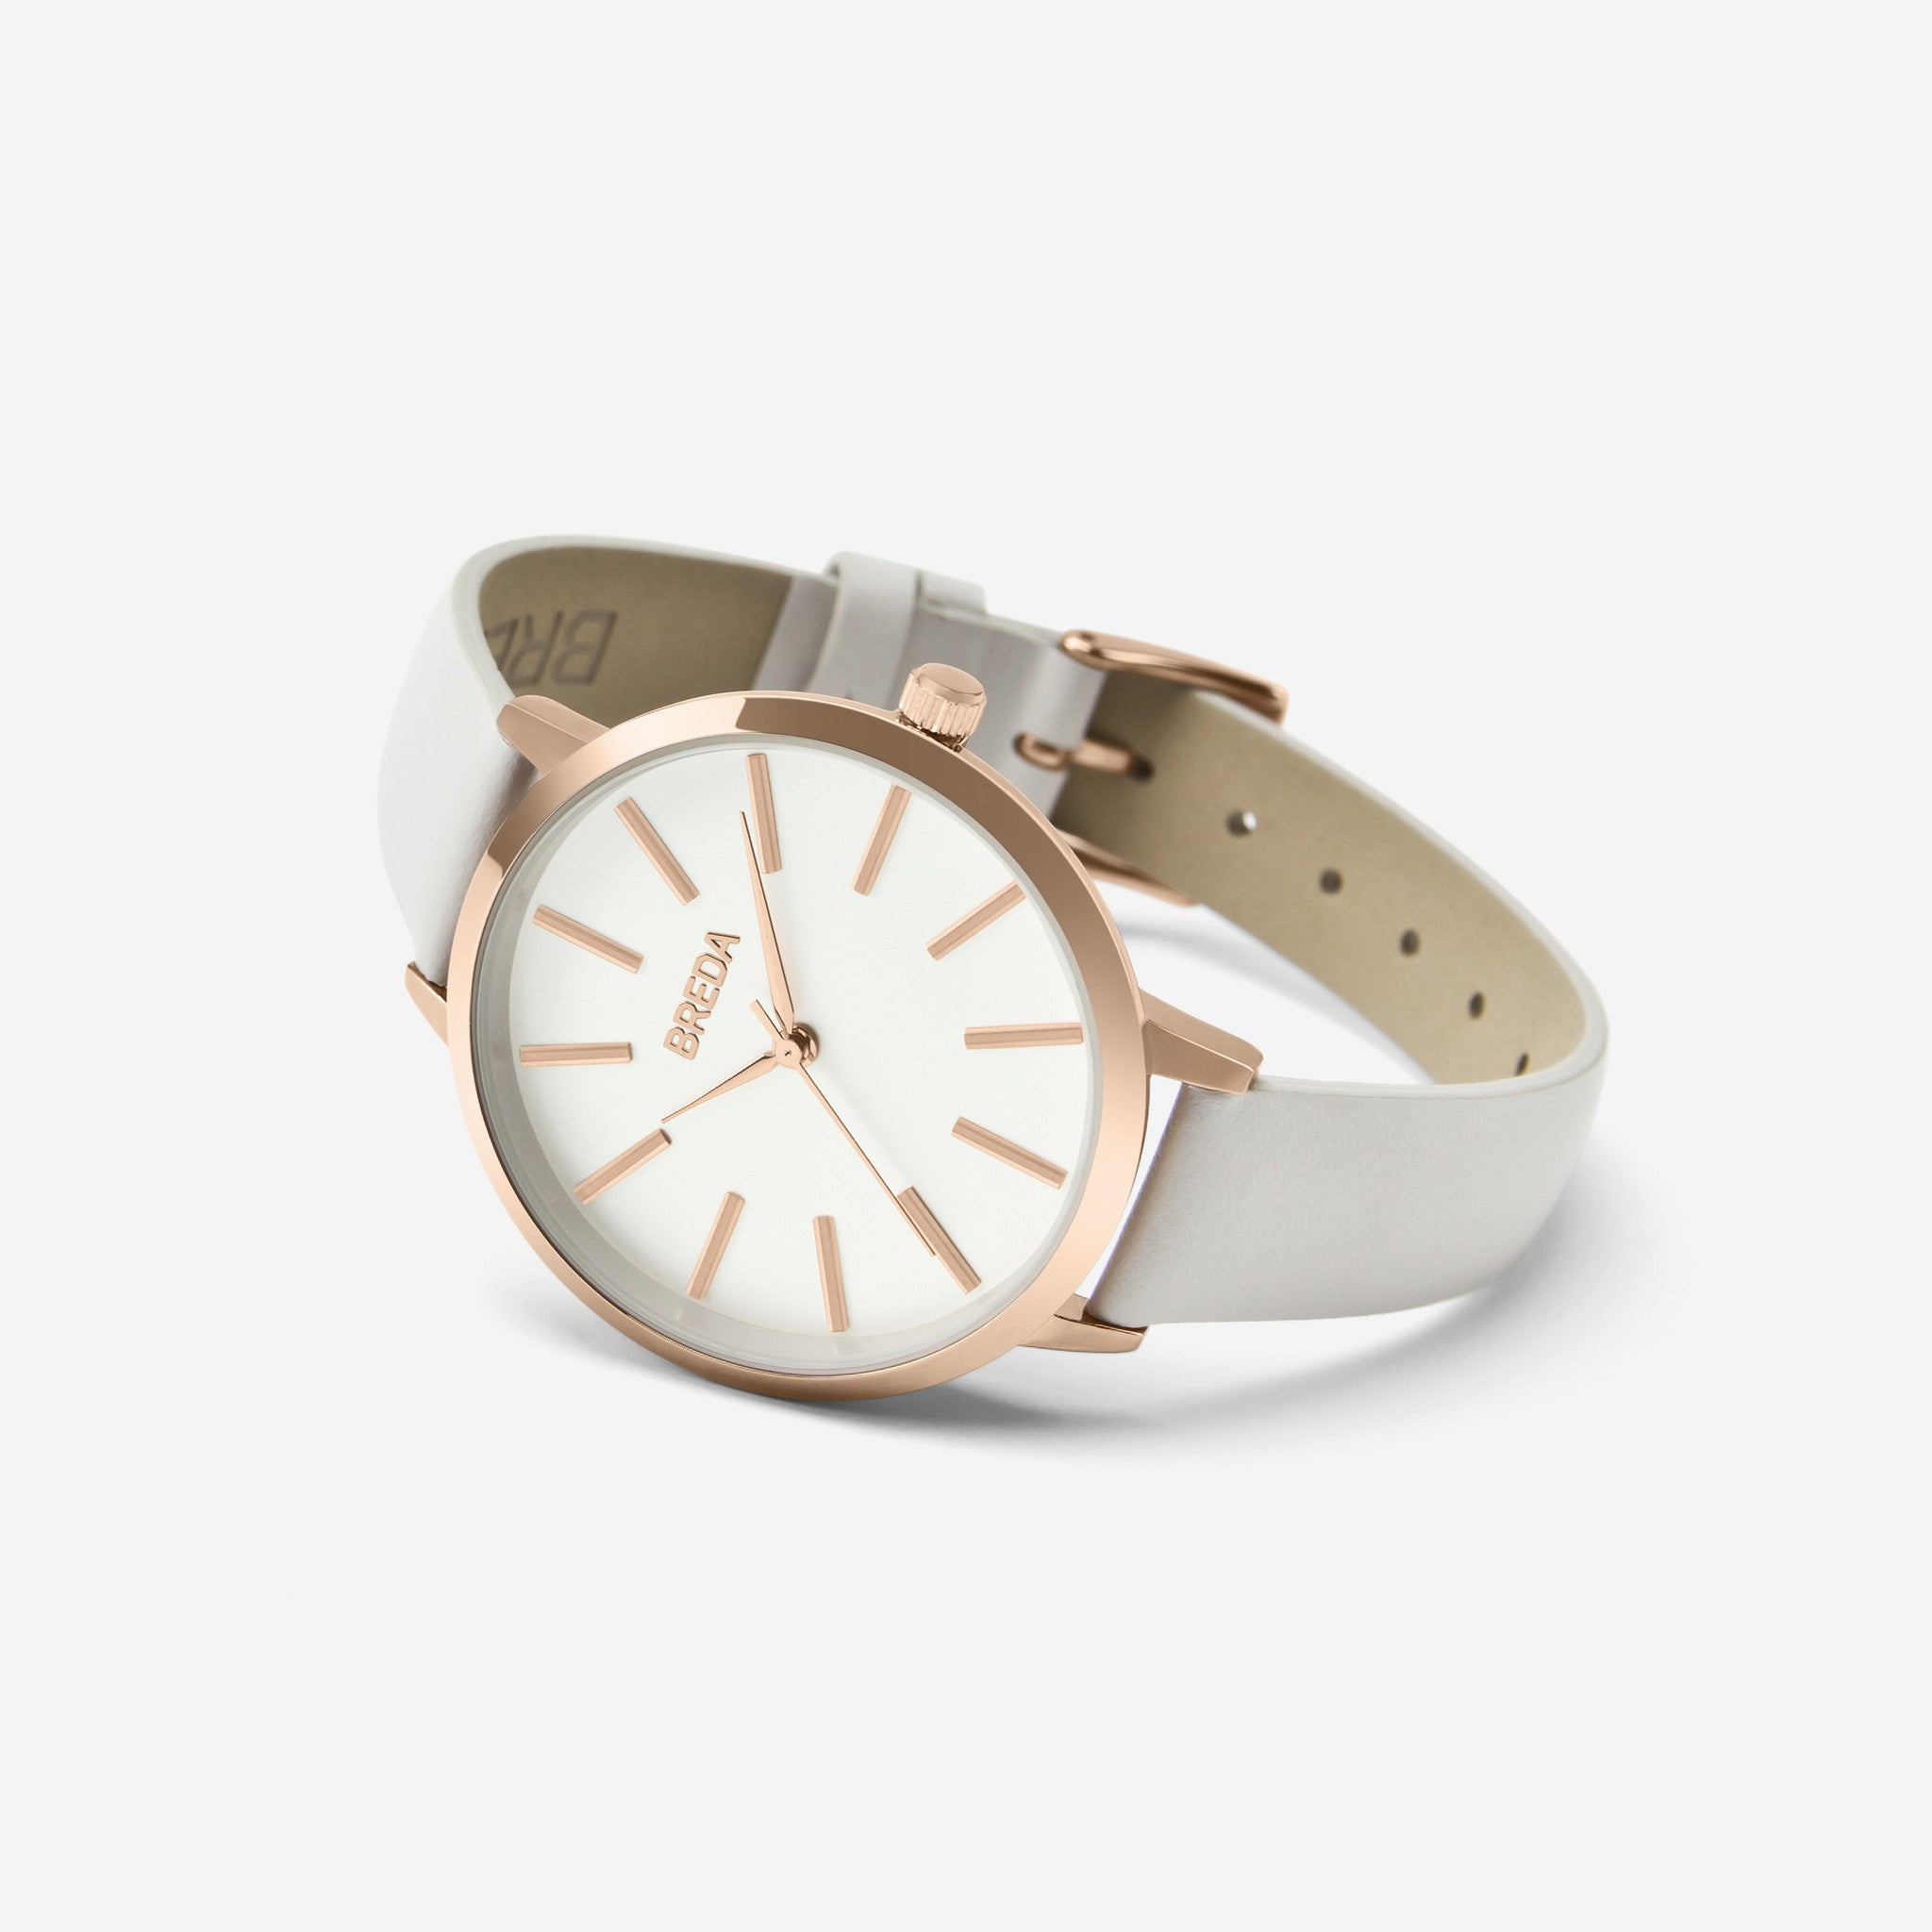 //cdn.shopify.com/s/files/1/0879/6650/products/breda-joule-1722f-rosegold-blush-watch-angle_1024x1024.jpg?v=1490812866